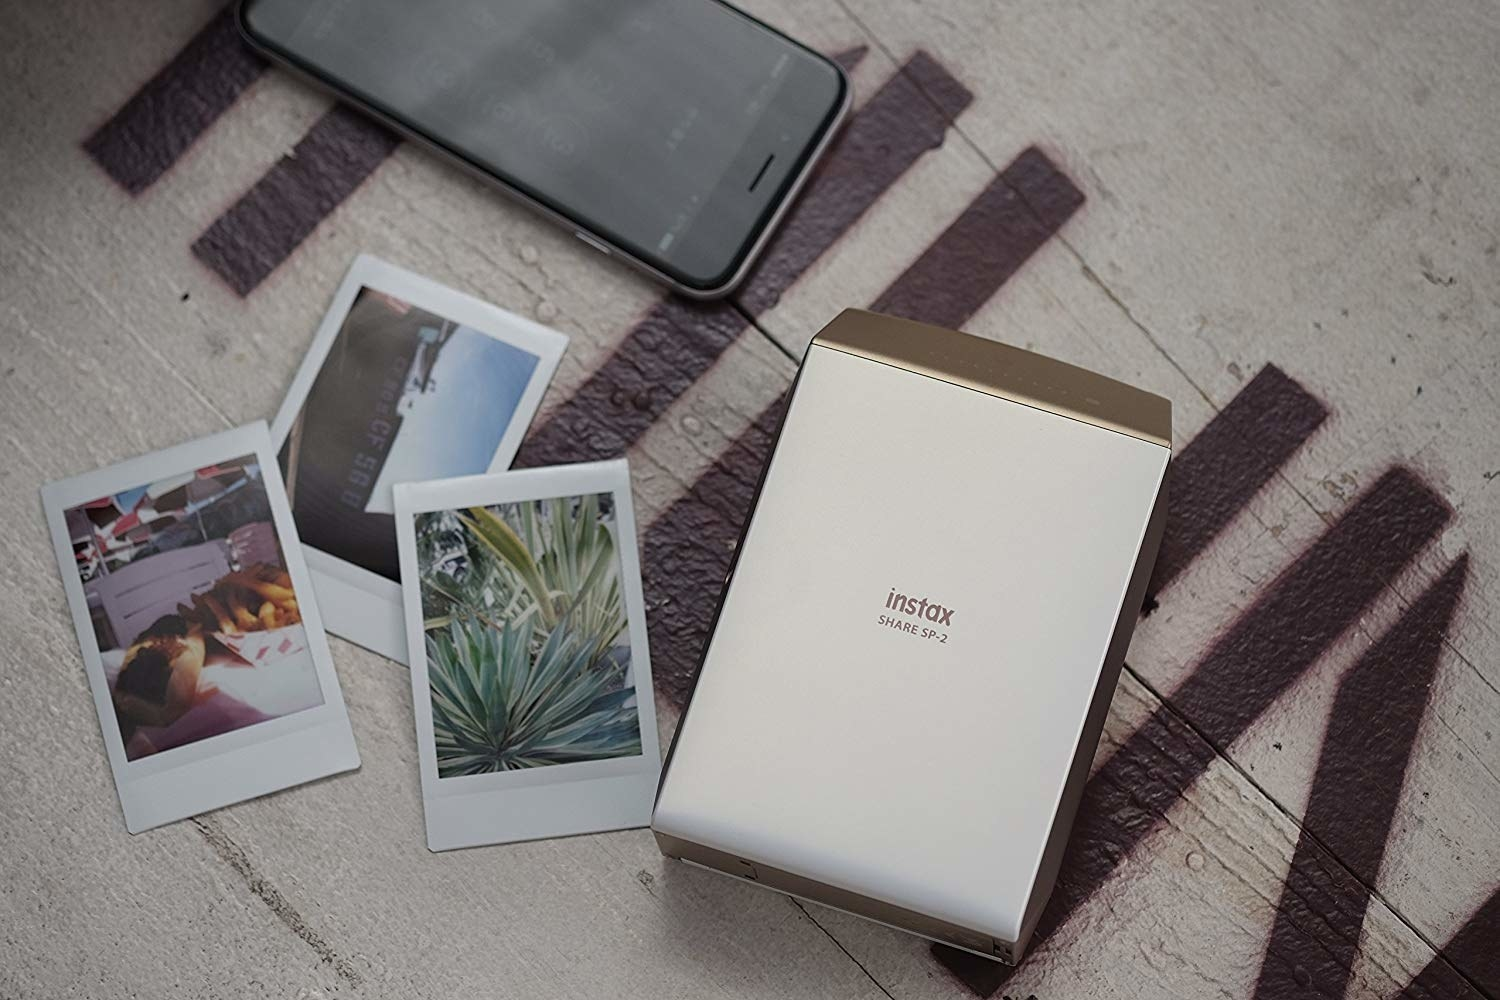 Small printer beside iPhone and photos